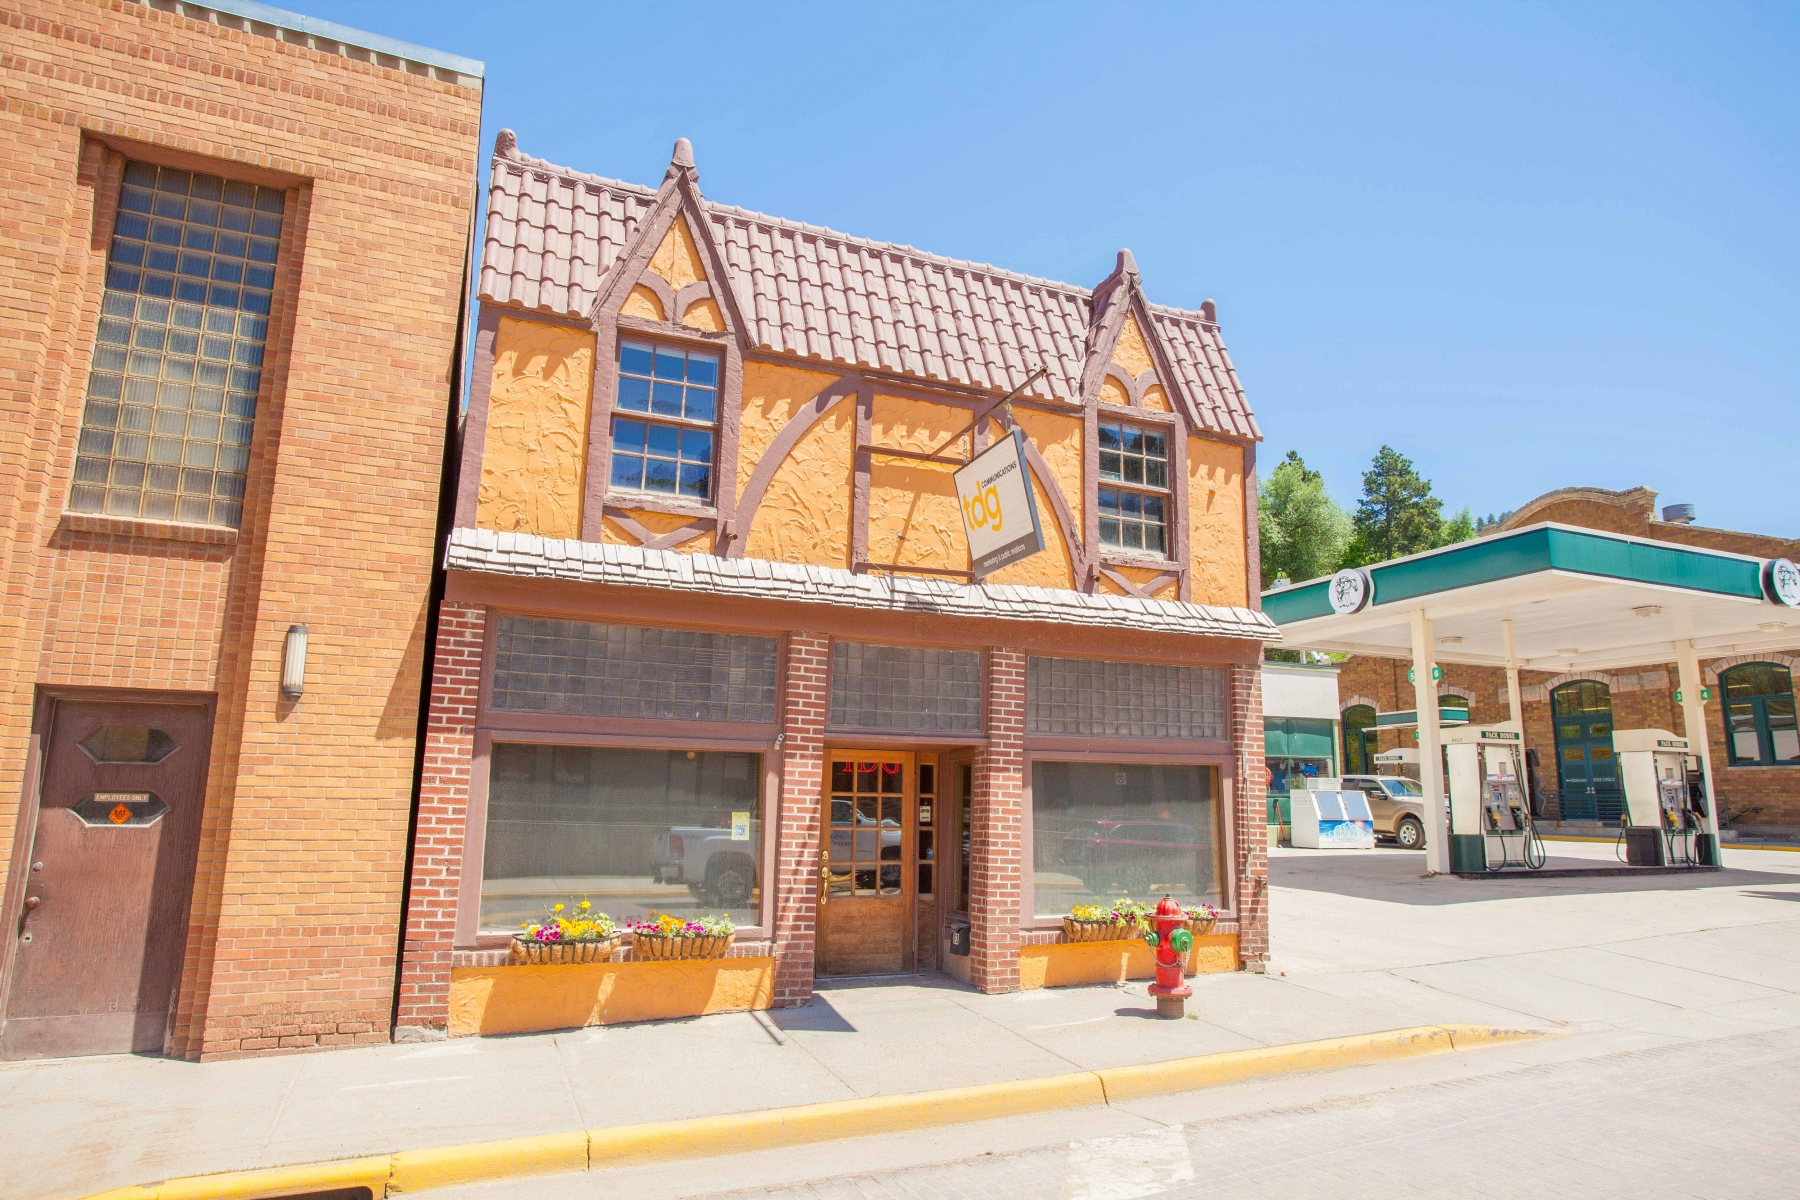 Swanky Office Building in Deadwood